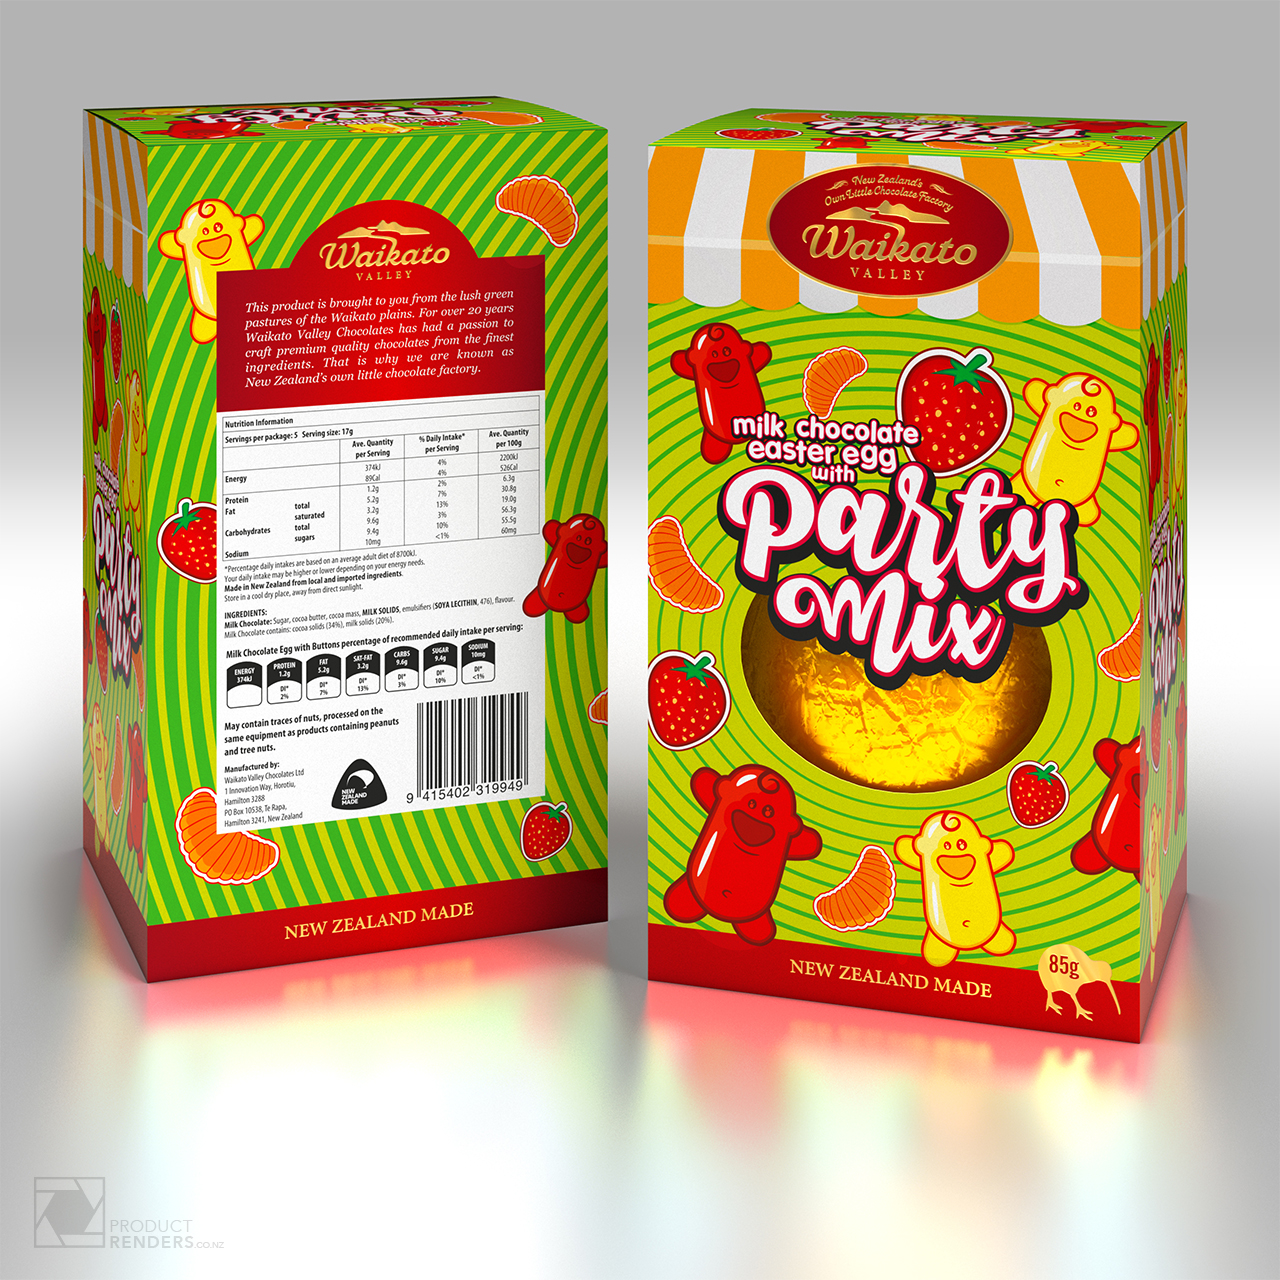 3D packaging render a Waikato Valley Milk Chocolate Party Mix Easter Egg